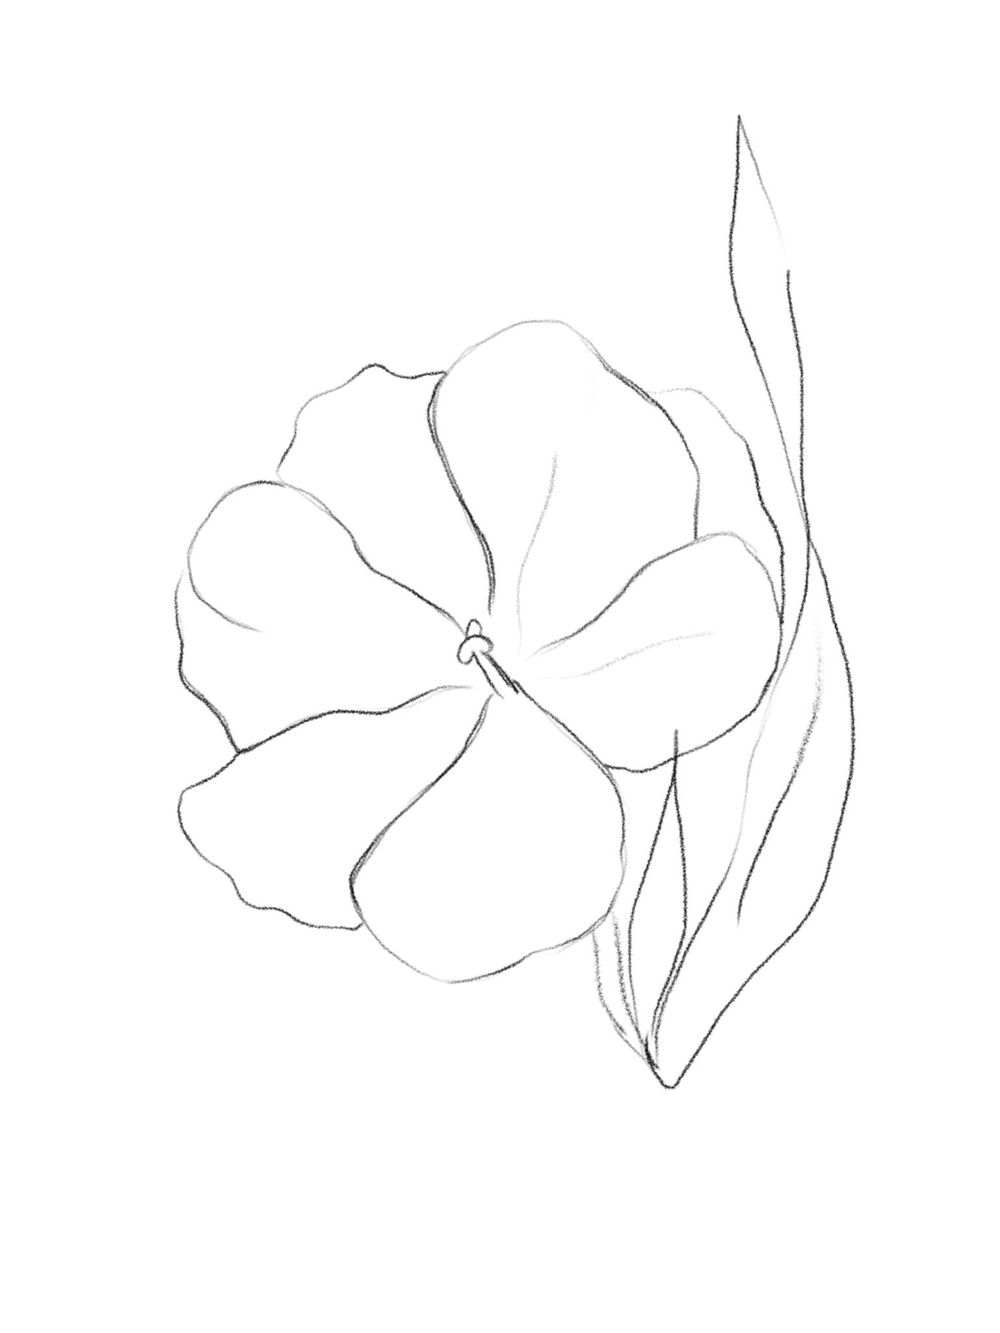 Flower Rough Sketch - image 1 - student project